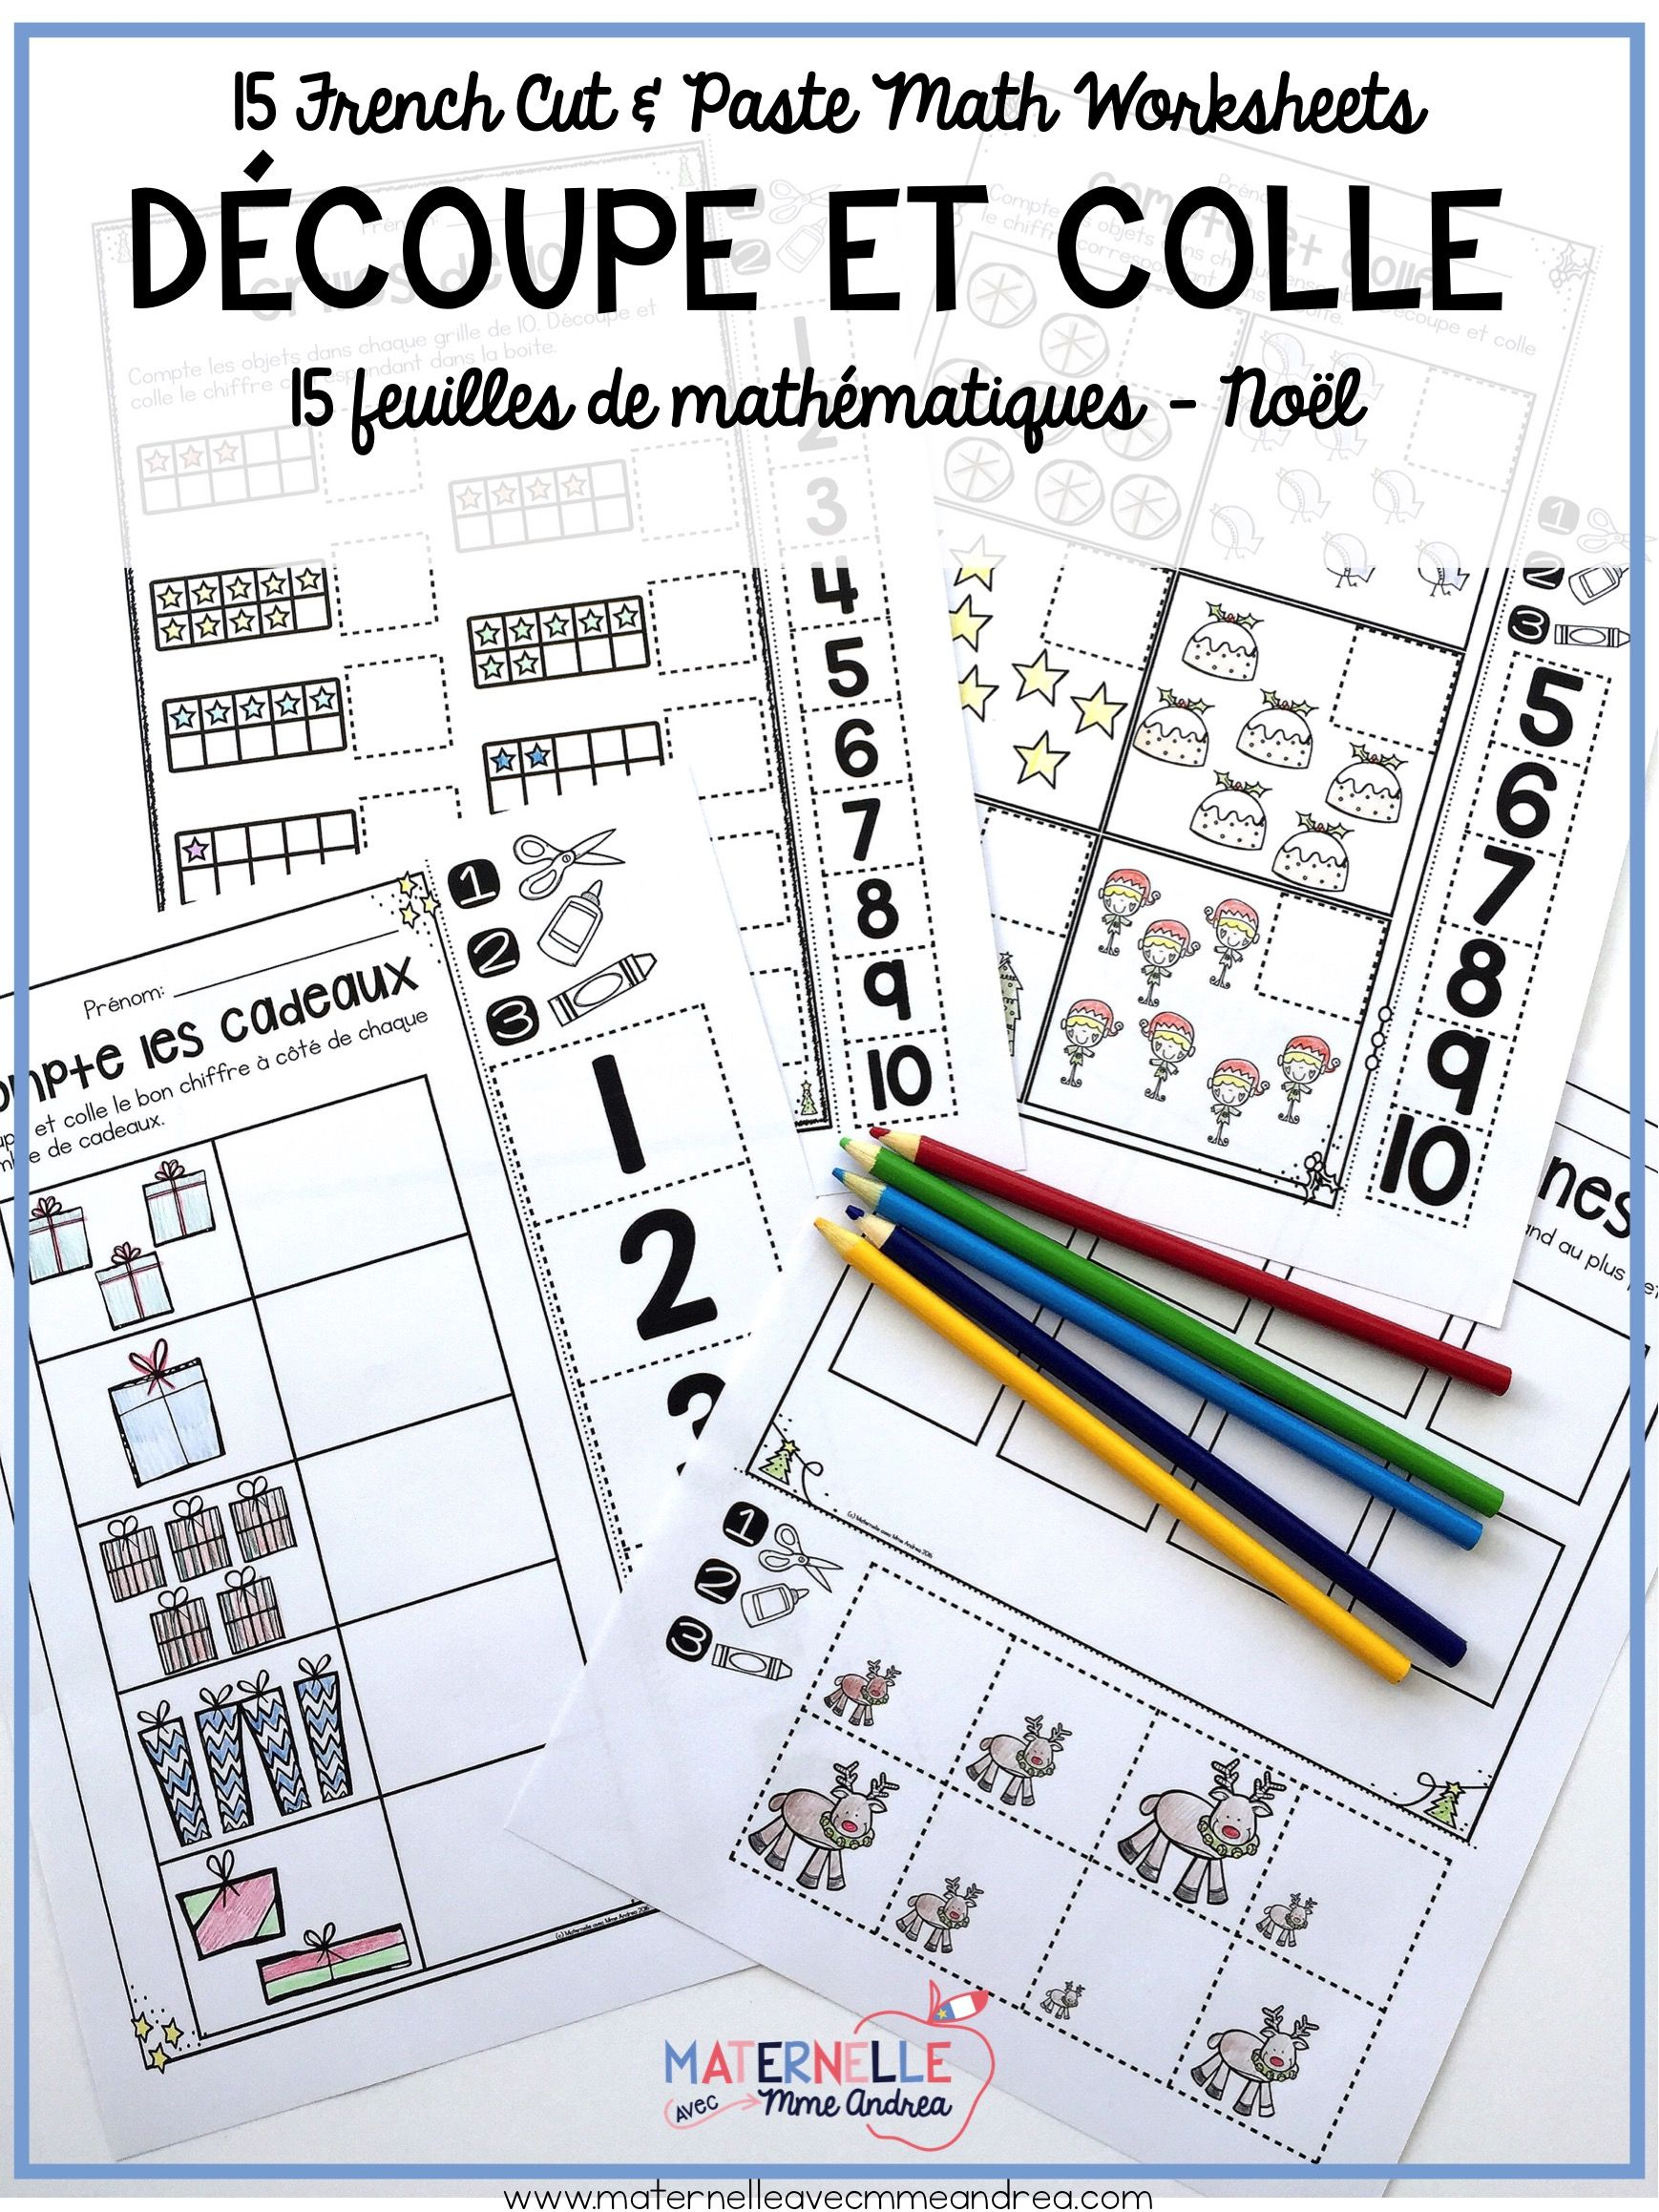 15 Christmas Themed Cut And Paste No Prep Math Worksheets En Francais Perfect For Substitutes